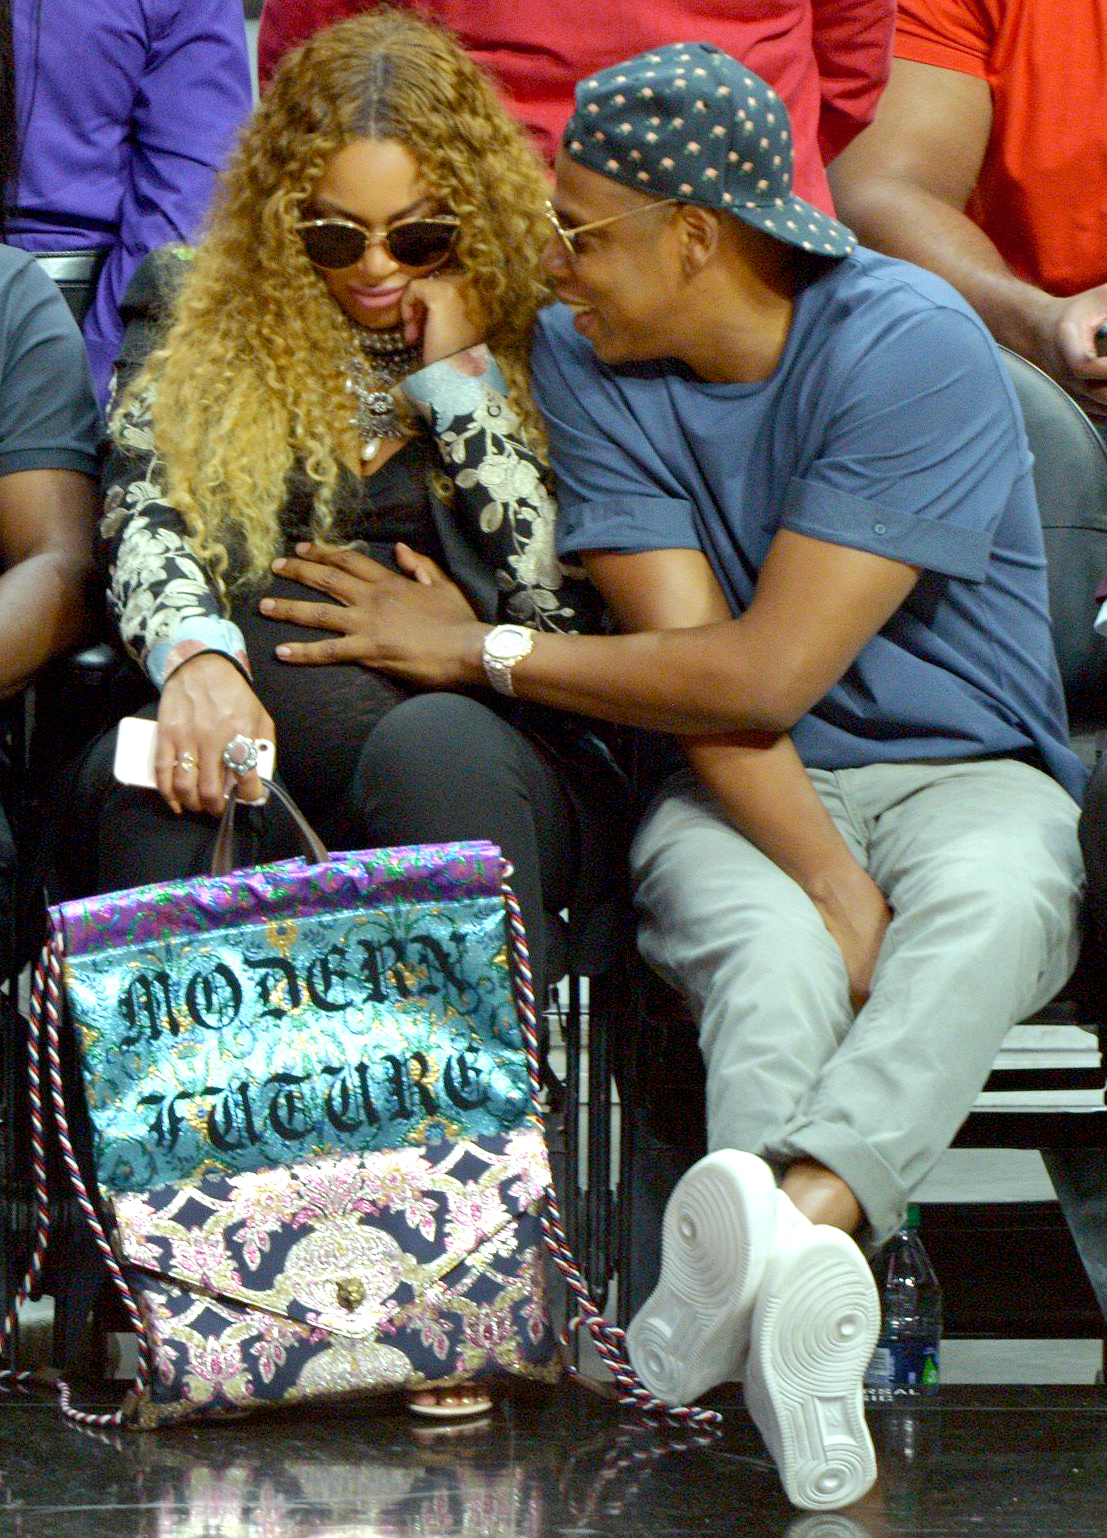 Beyonce and Jay Z attend the Utah Jazz vs Los Angles Clippers NBA Western Conference Game.